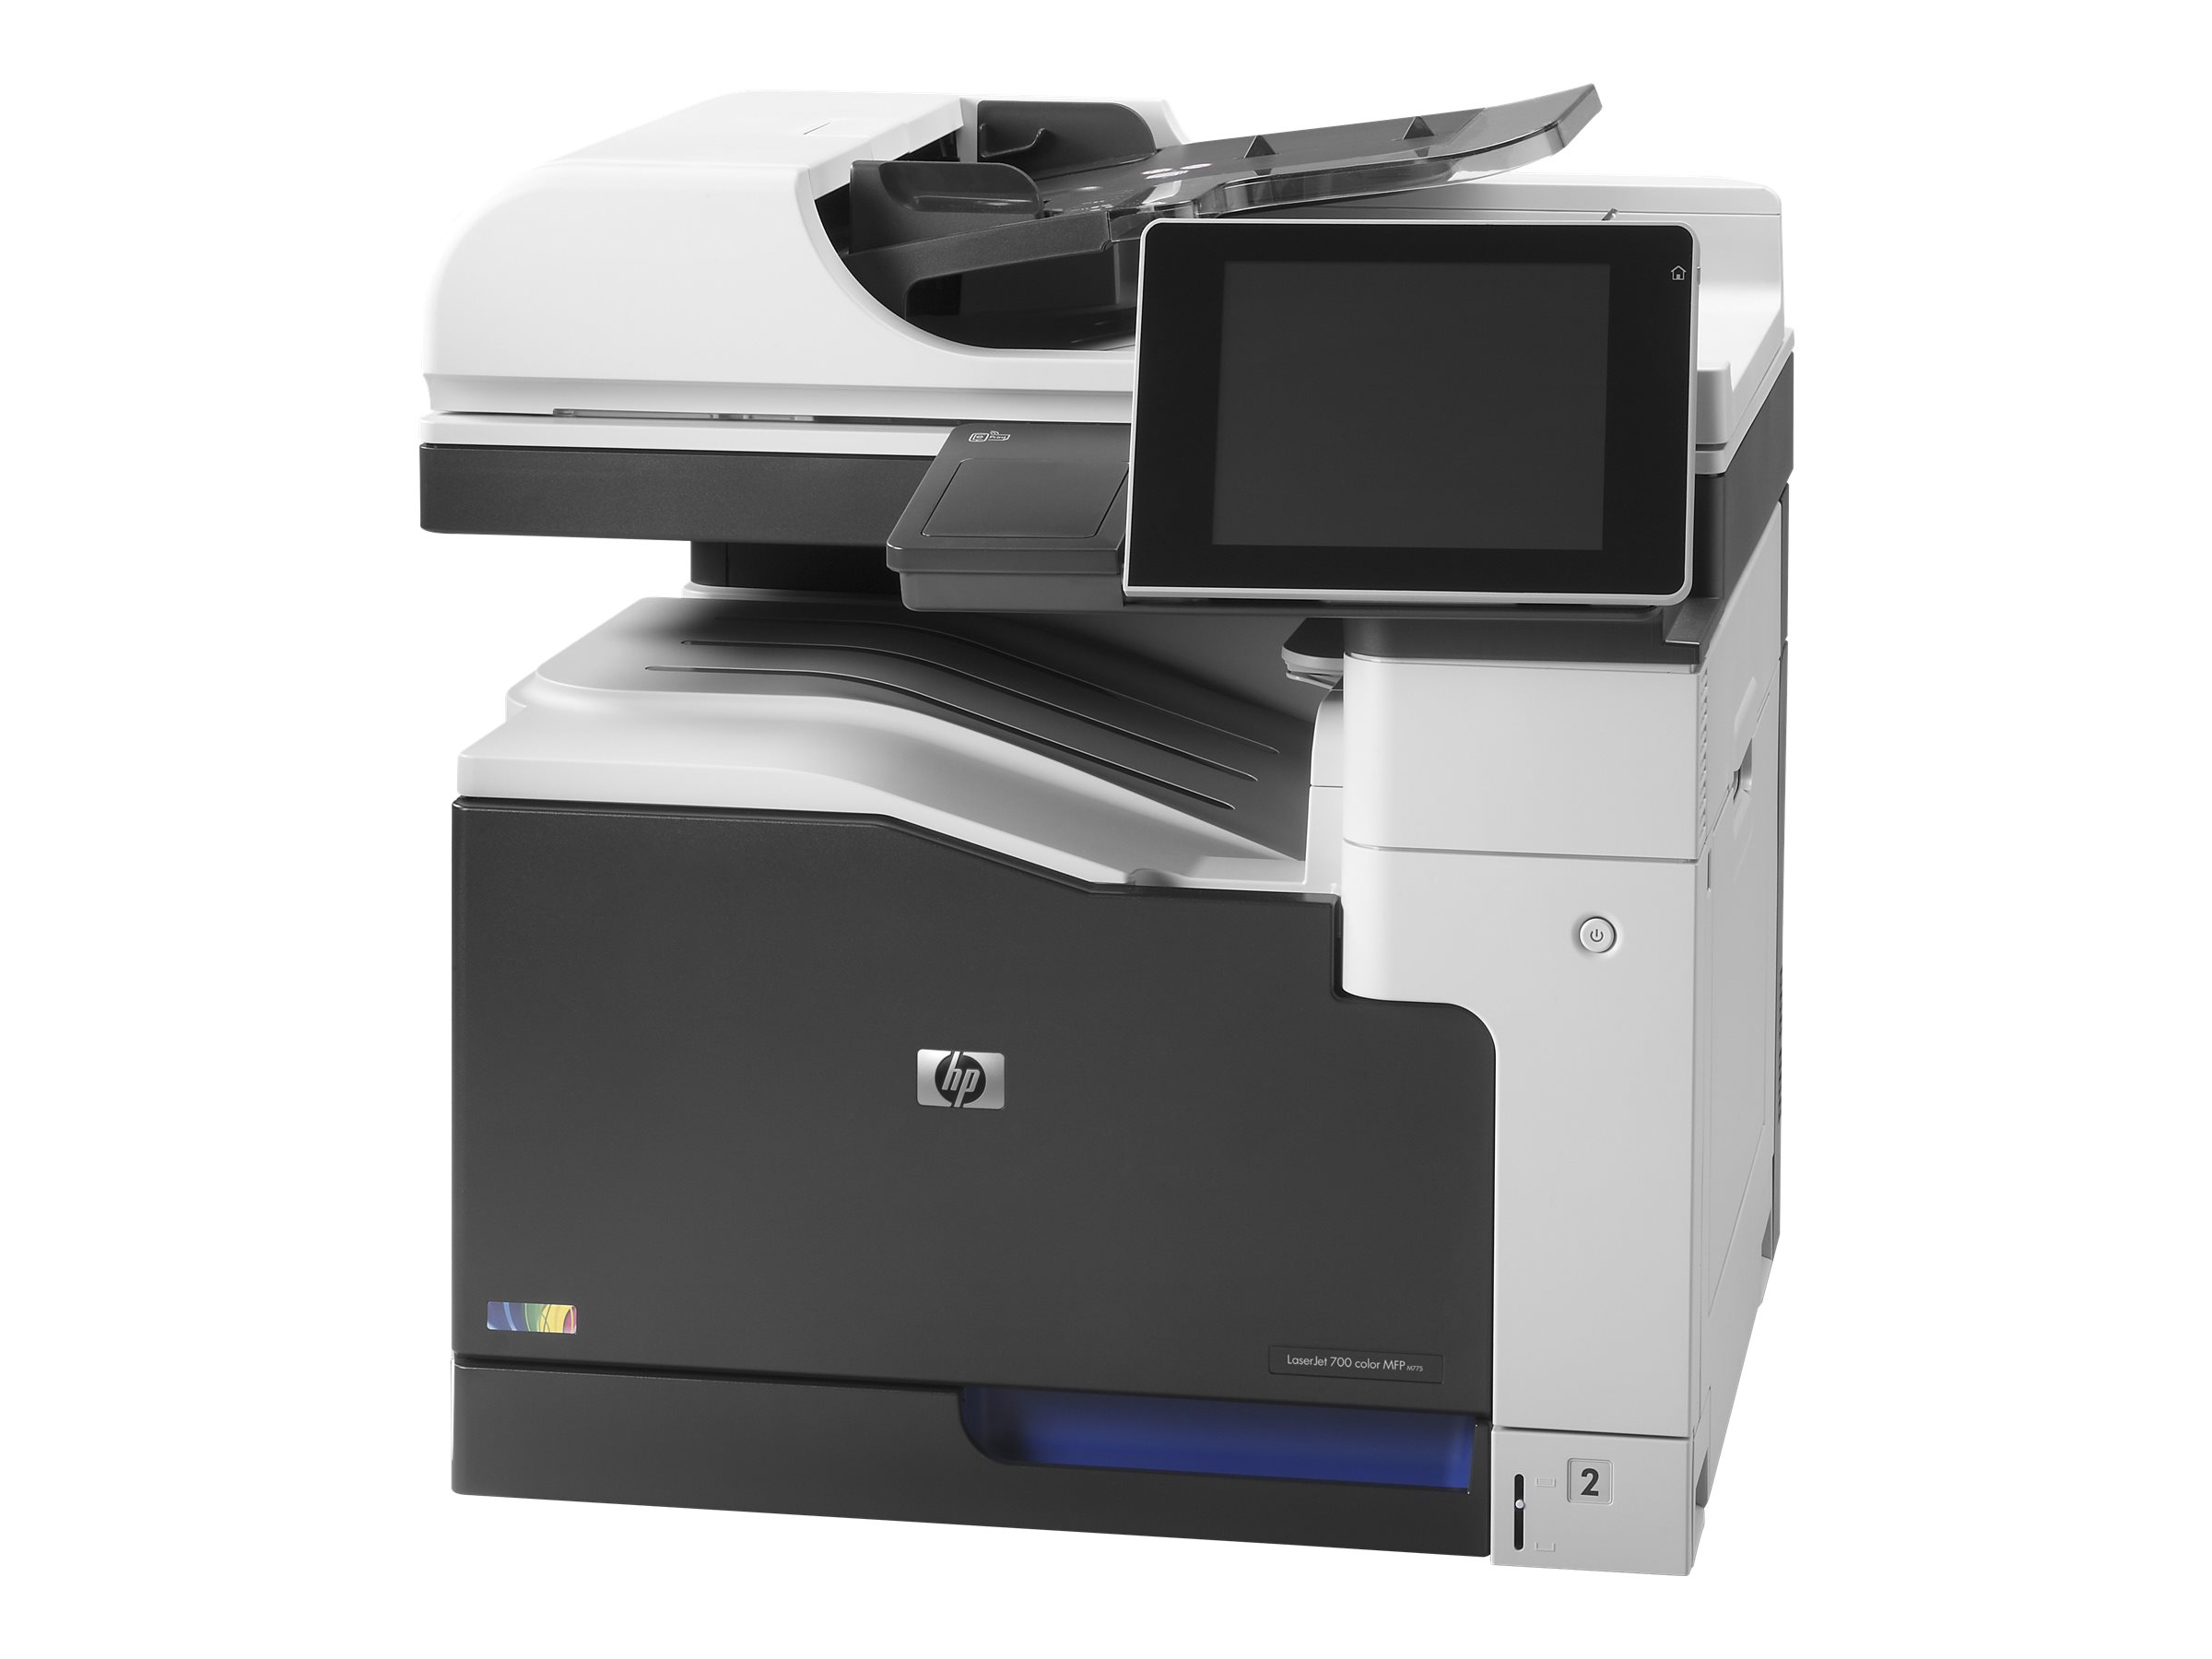 HP LaserJet Enterprise MFP M775dn - Multifunktionsdrucker - Farbe - Laser - A3/Ledger (297 x 432 mm) (Original) - A3/Ledger (Medien)